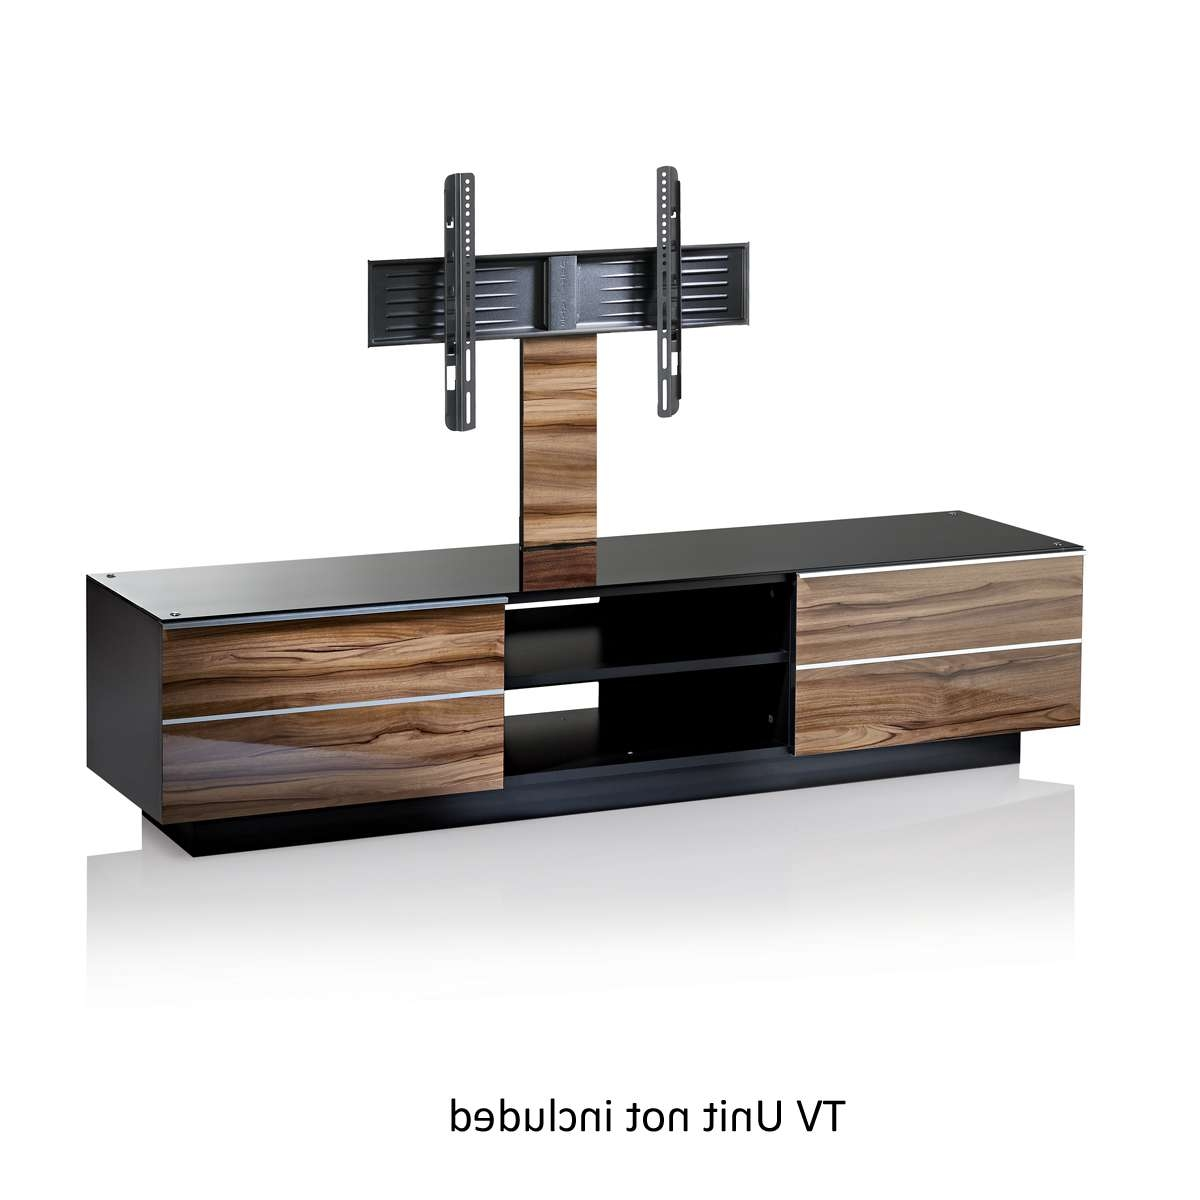 Milano G B 80 Mln Cantilever Tv Bracket,ukcf Ultimate,,uk Cf With Regard To Cantilever Tv Stands (View 13 of 15)